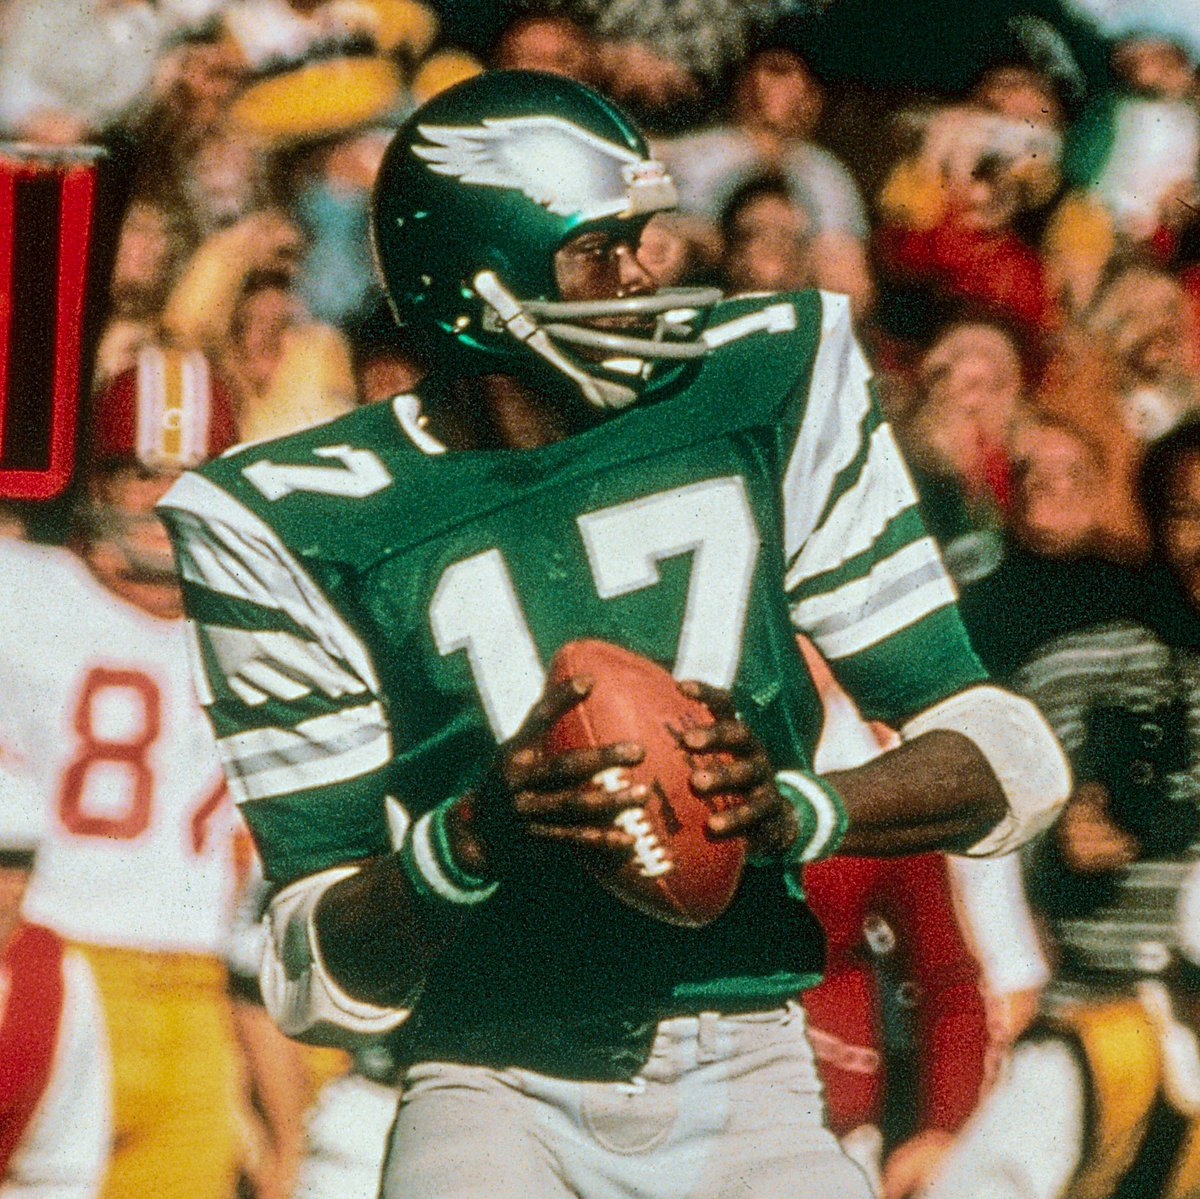 In addition to setting a then-NFL record with 127 consecutive games with a reception from 1972-1980, Harold Carmichael led all NFL wide receivers in receptions (549), receiving yards (8,414), and receiving TDs (77) from 1973-83.  #FlyEaglesFly